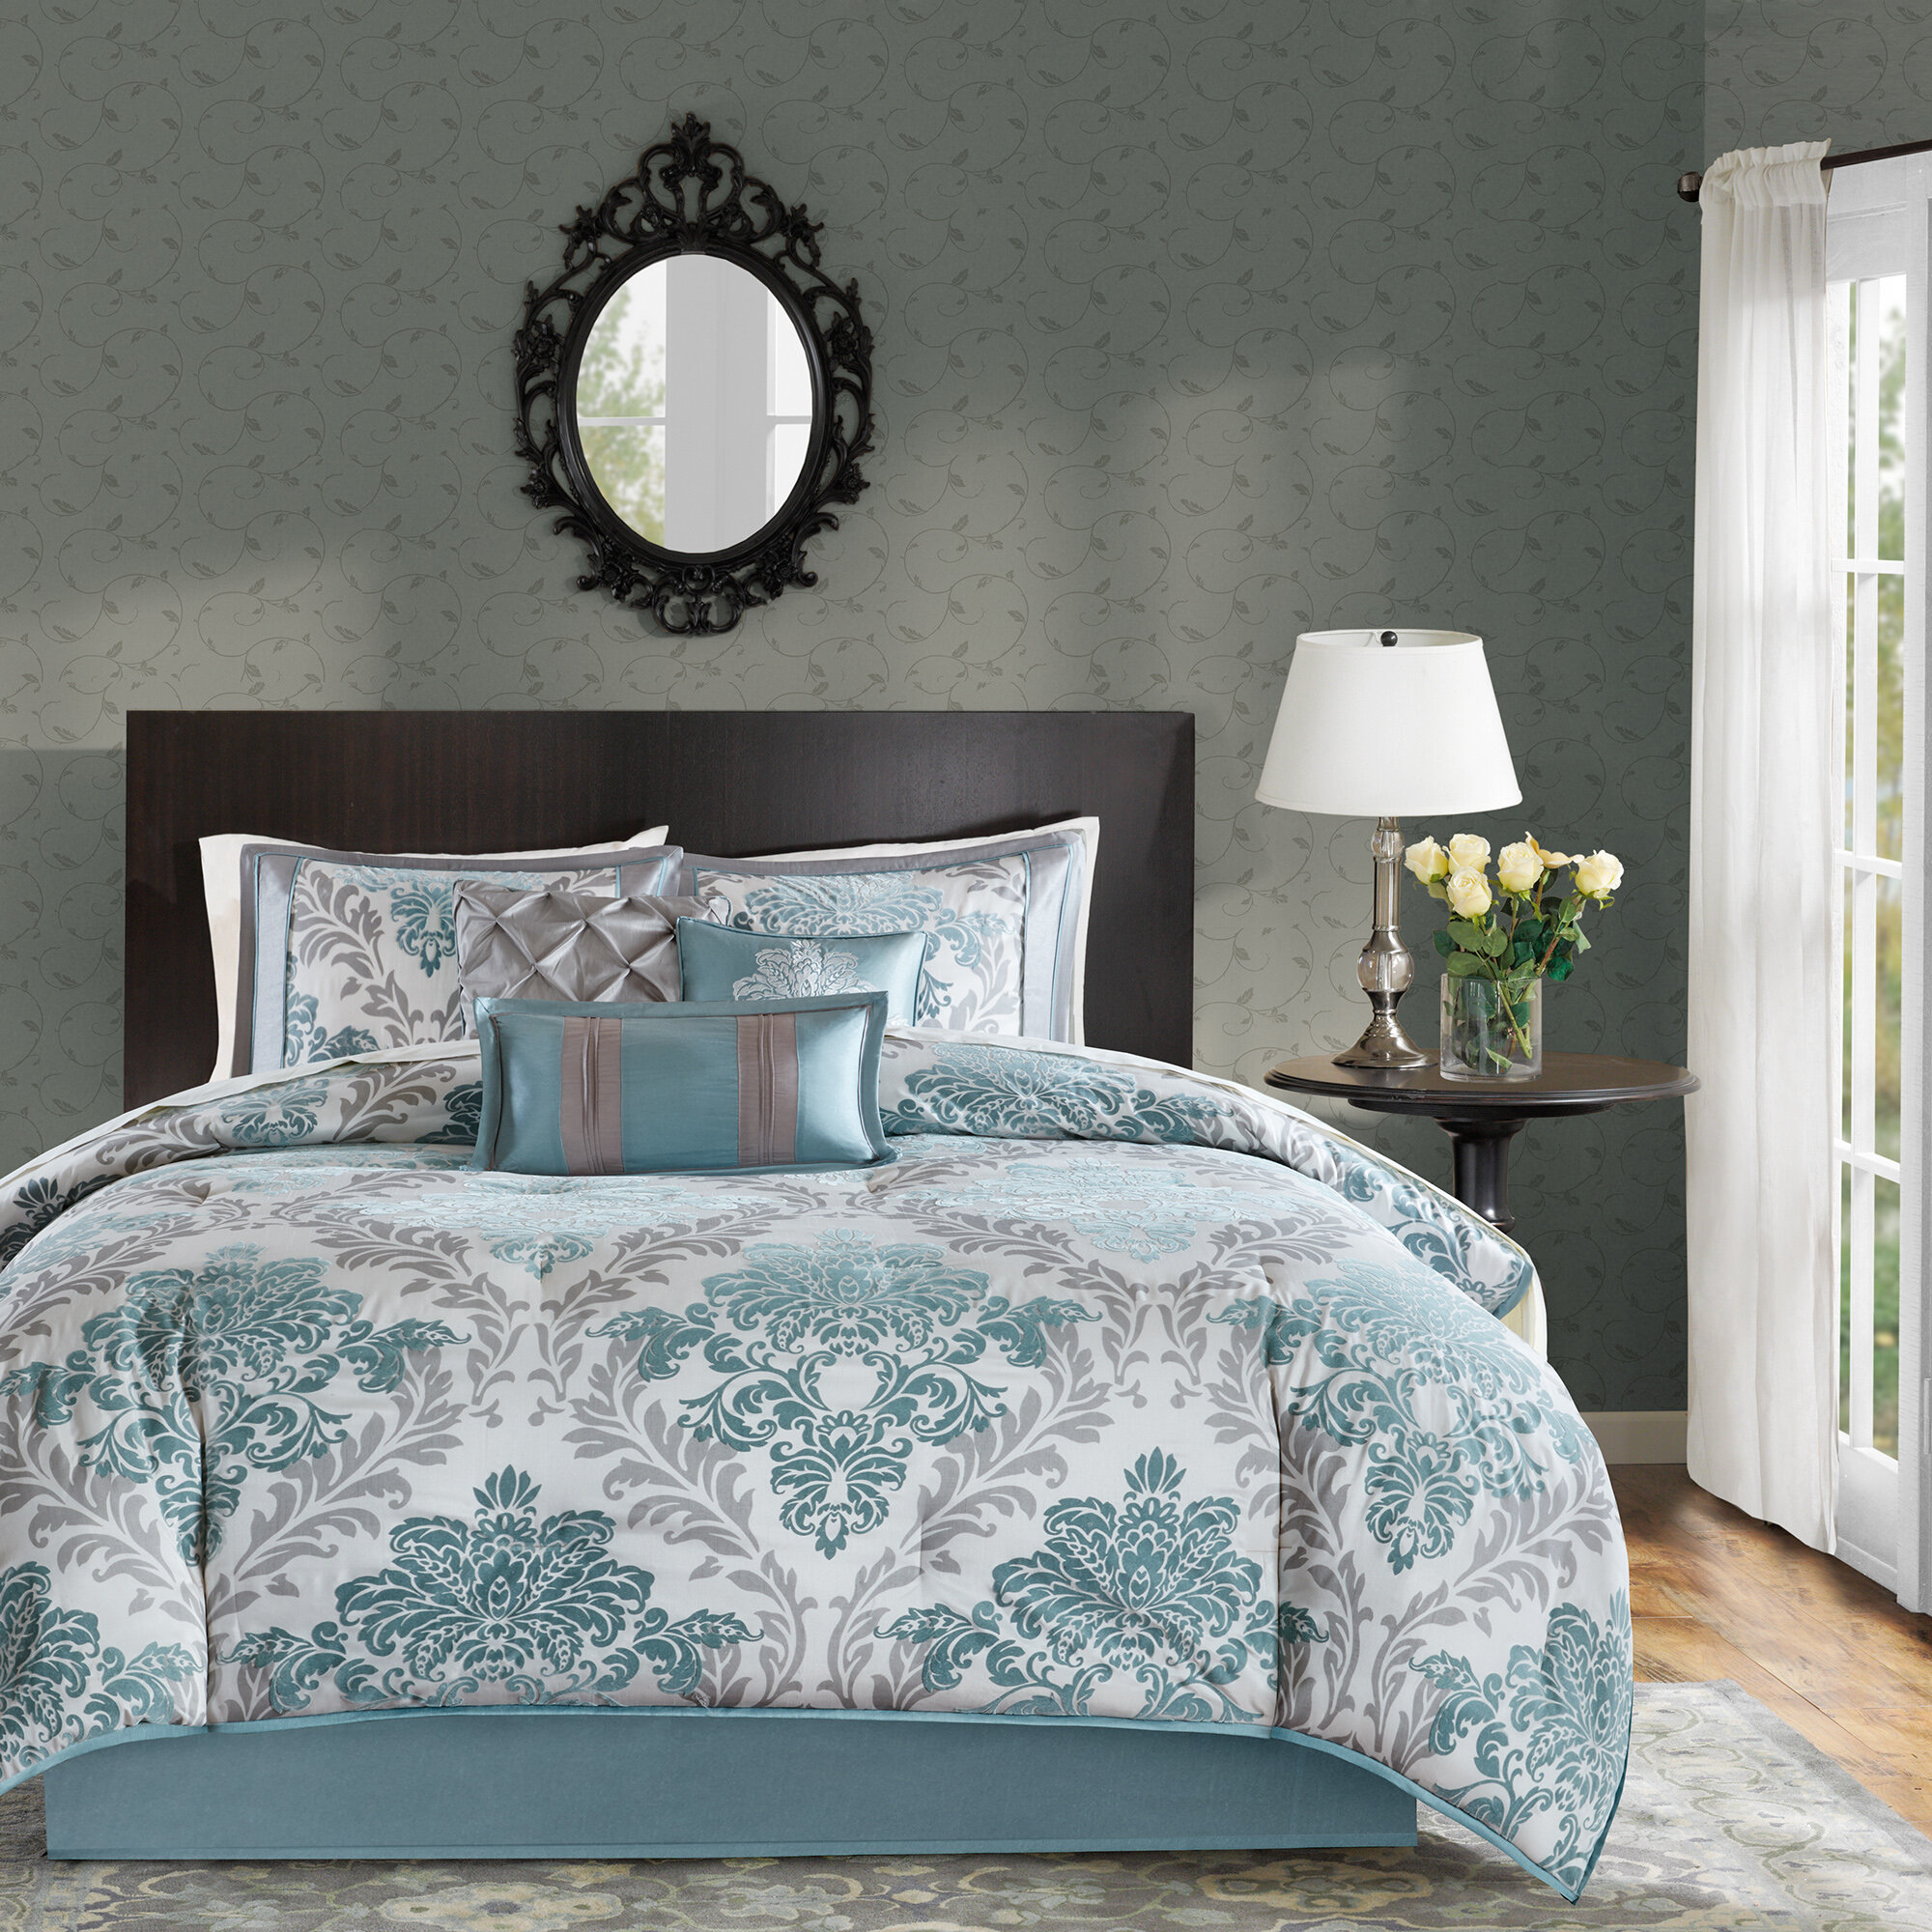 Darby Home Co Dunia Comforter Set Reviews Wayfair